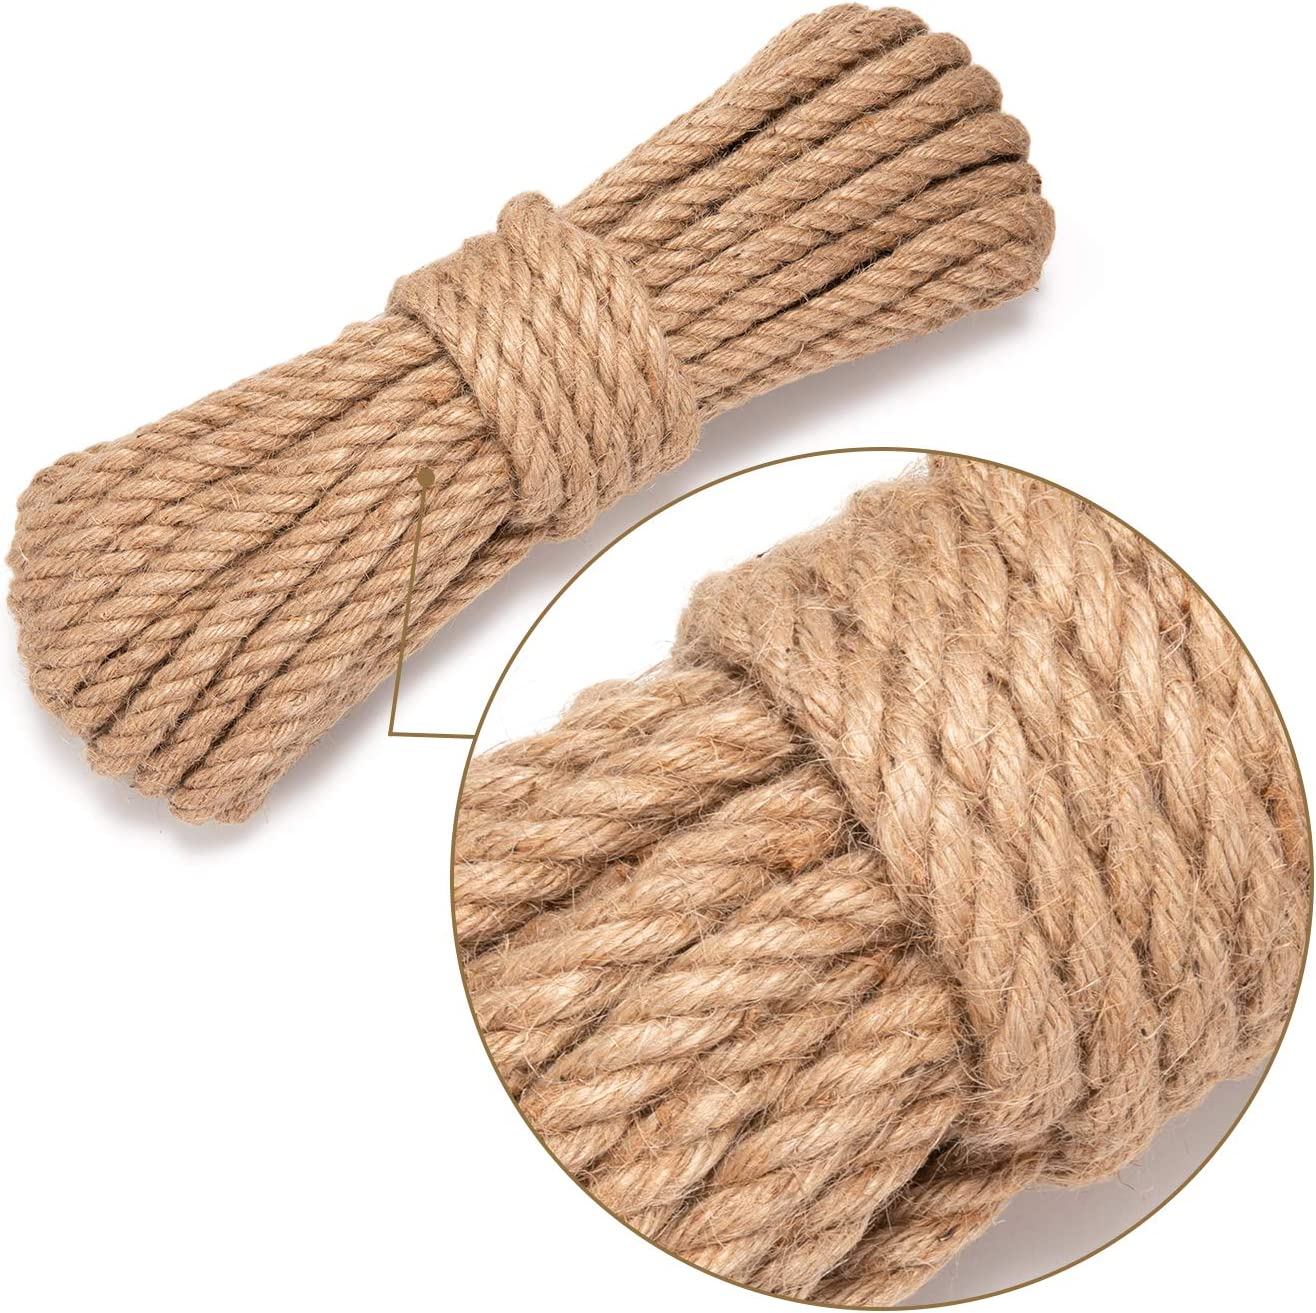 Axieso Jute Rope 50 Feet 1/2 Inch - Heavy Duty Twine Rope for Crafts - Decorative Thick Natural Craft Hemp Rope - Garden Jute String for Indoor and Outdoor Projects - Nautical Style Burlap Cord (13mm)